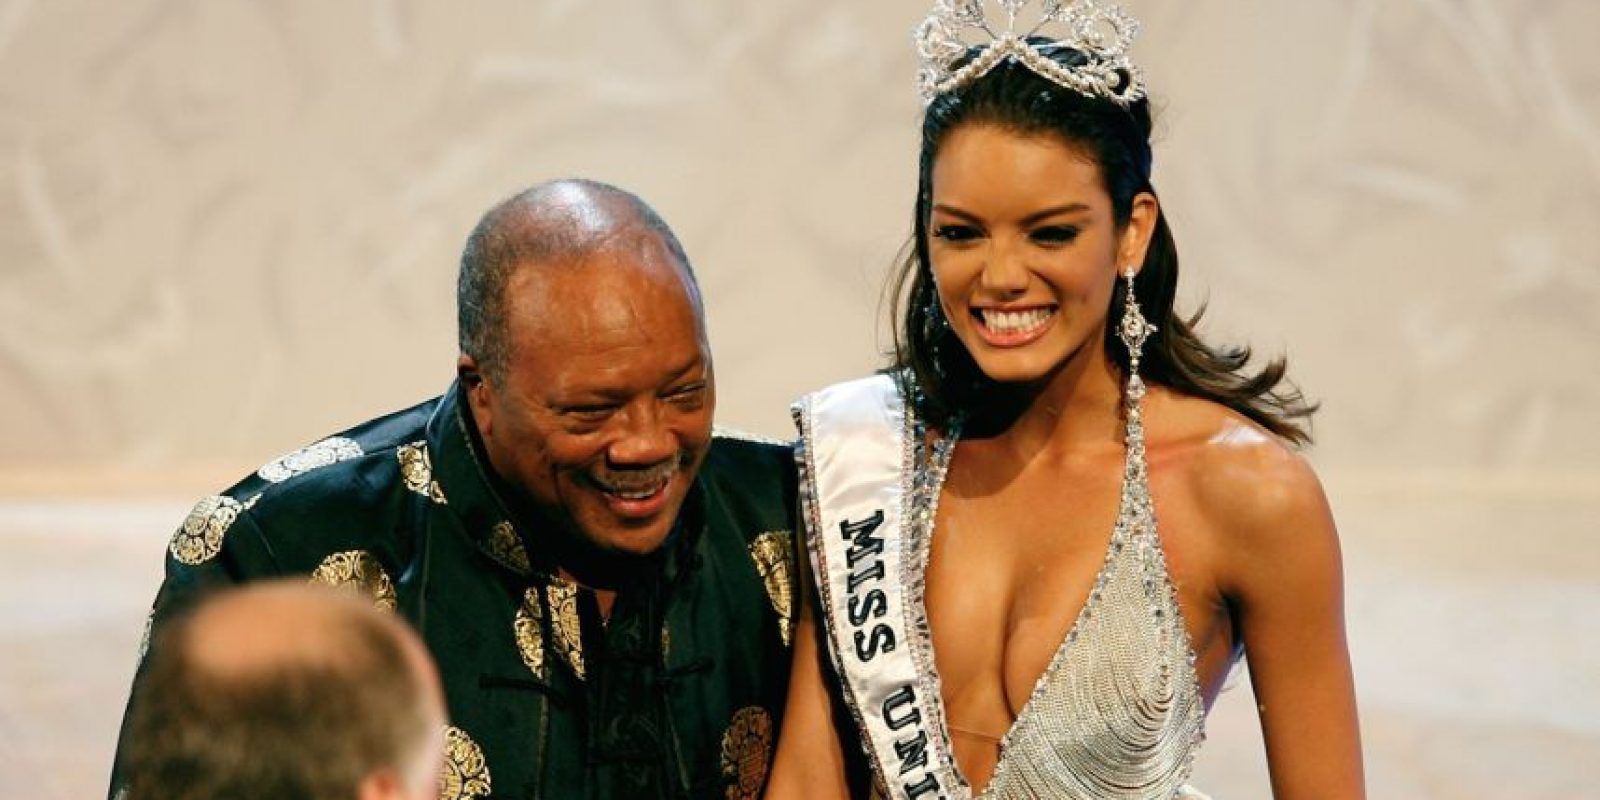 Miss Puerto Rico 2006 Foto: Getty Images